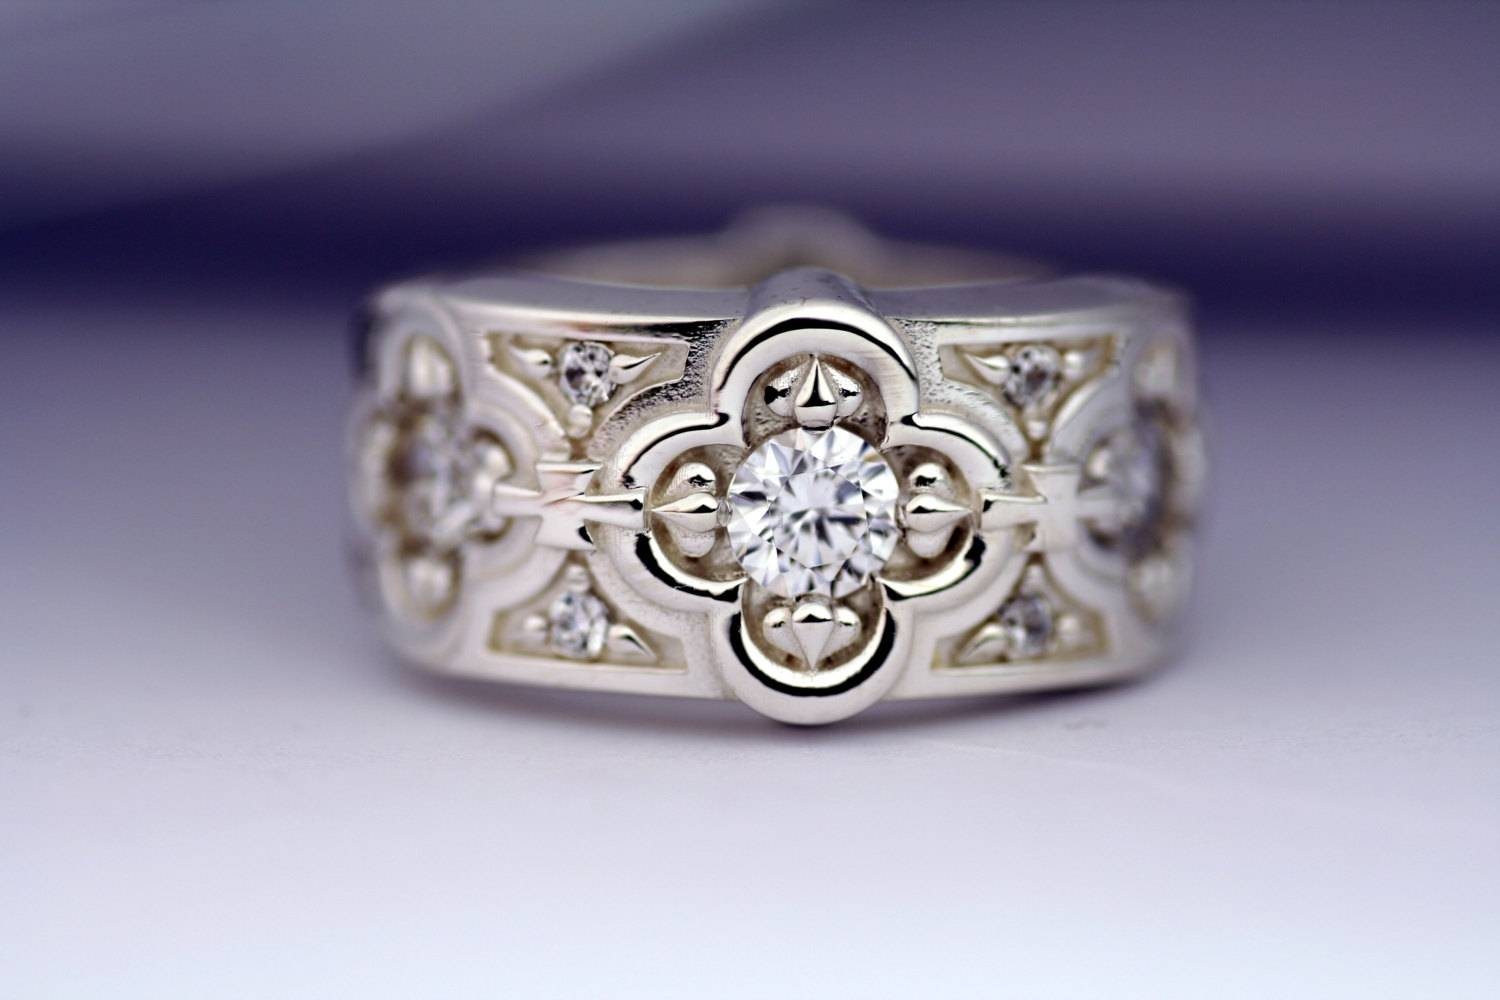 Not Expensive Zsolt Wedding Rings: Renaissance Style Wedding Ring Pertaining To Renaissance Style Engagement Rings (View 10 of 15)